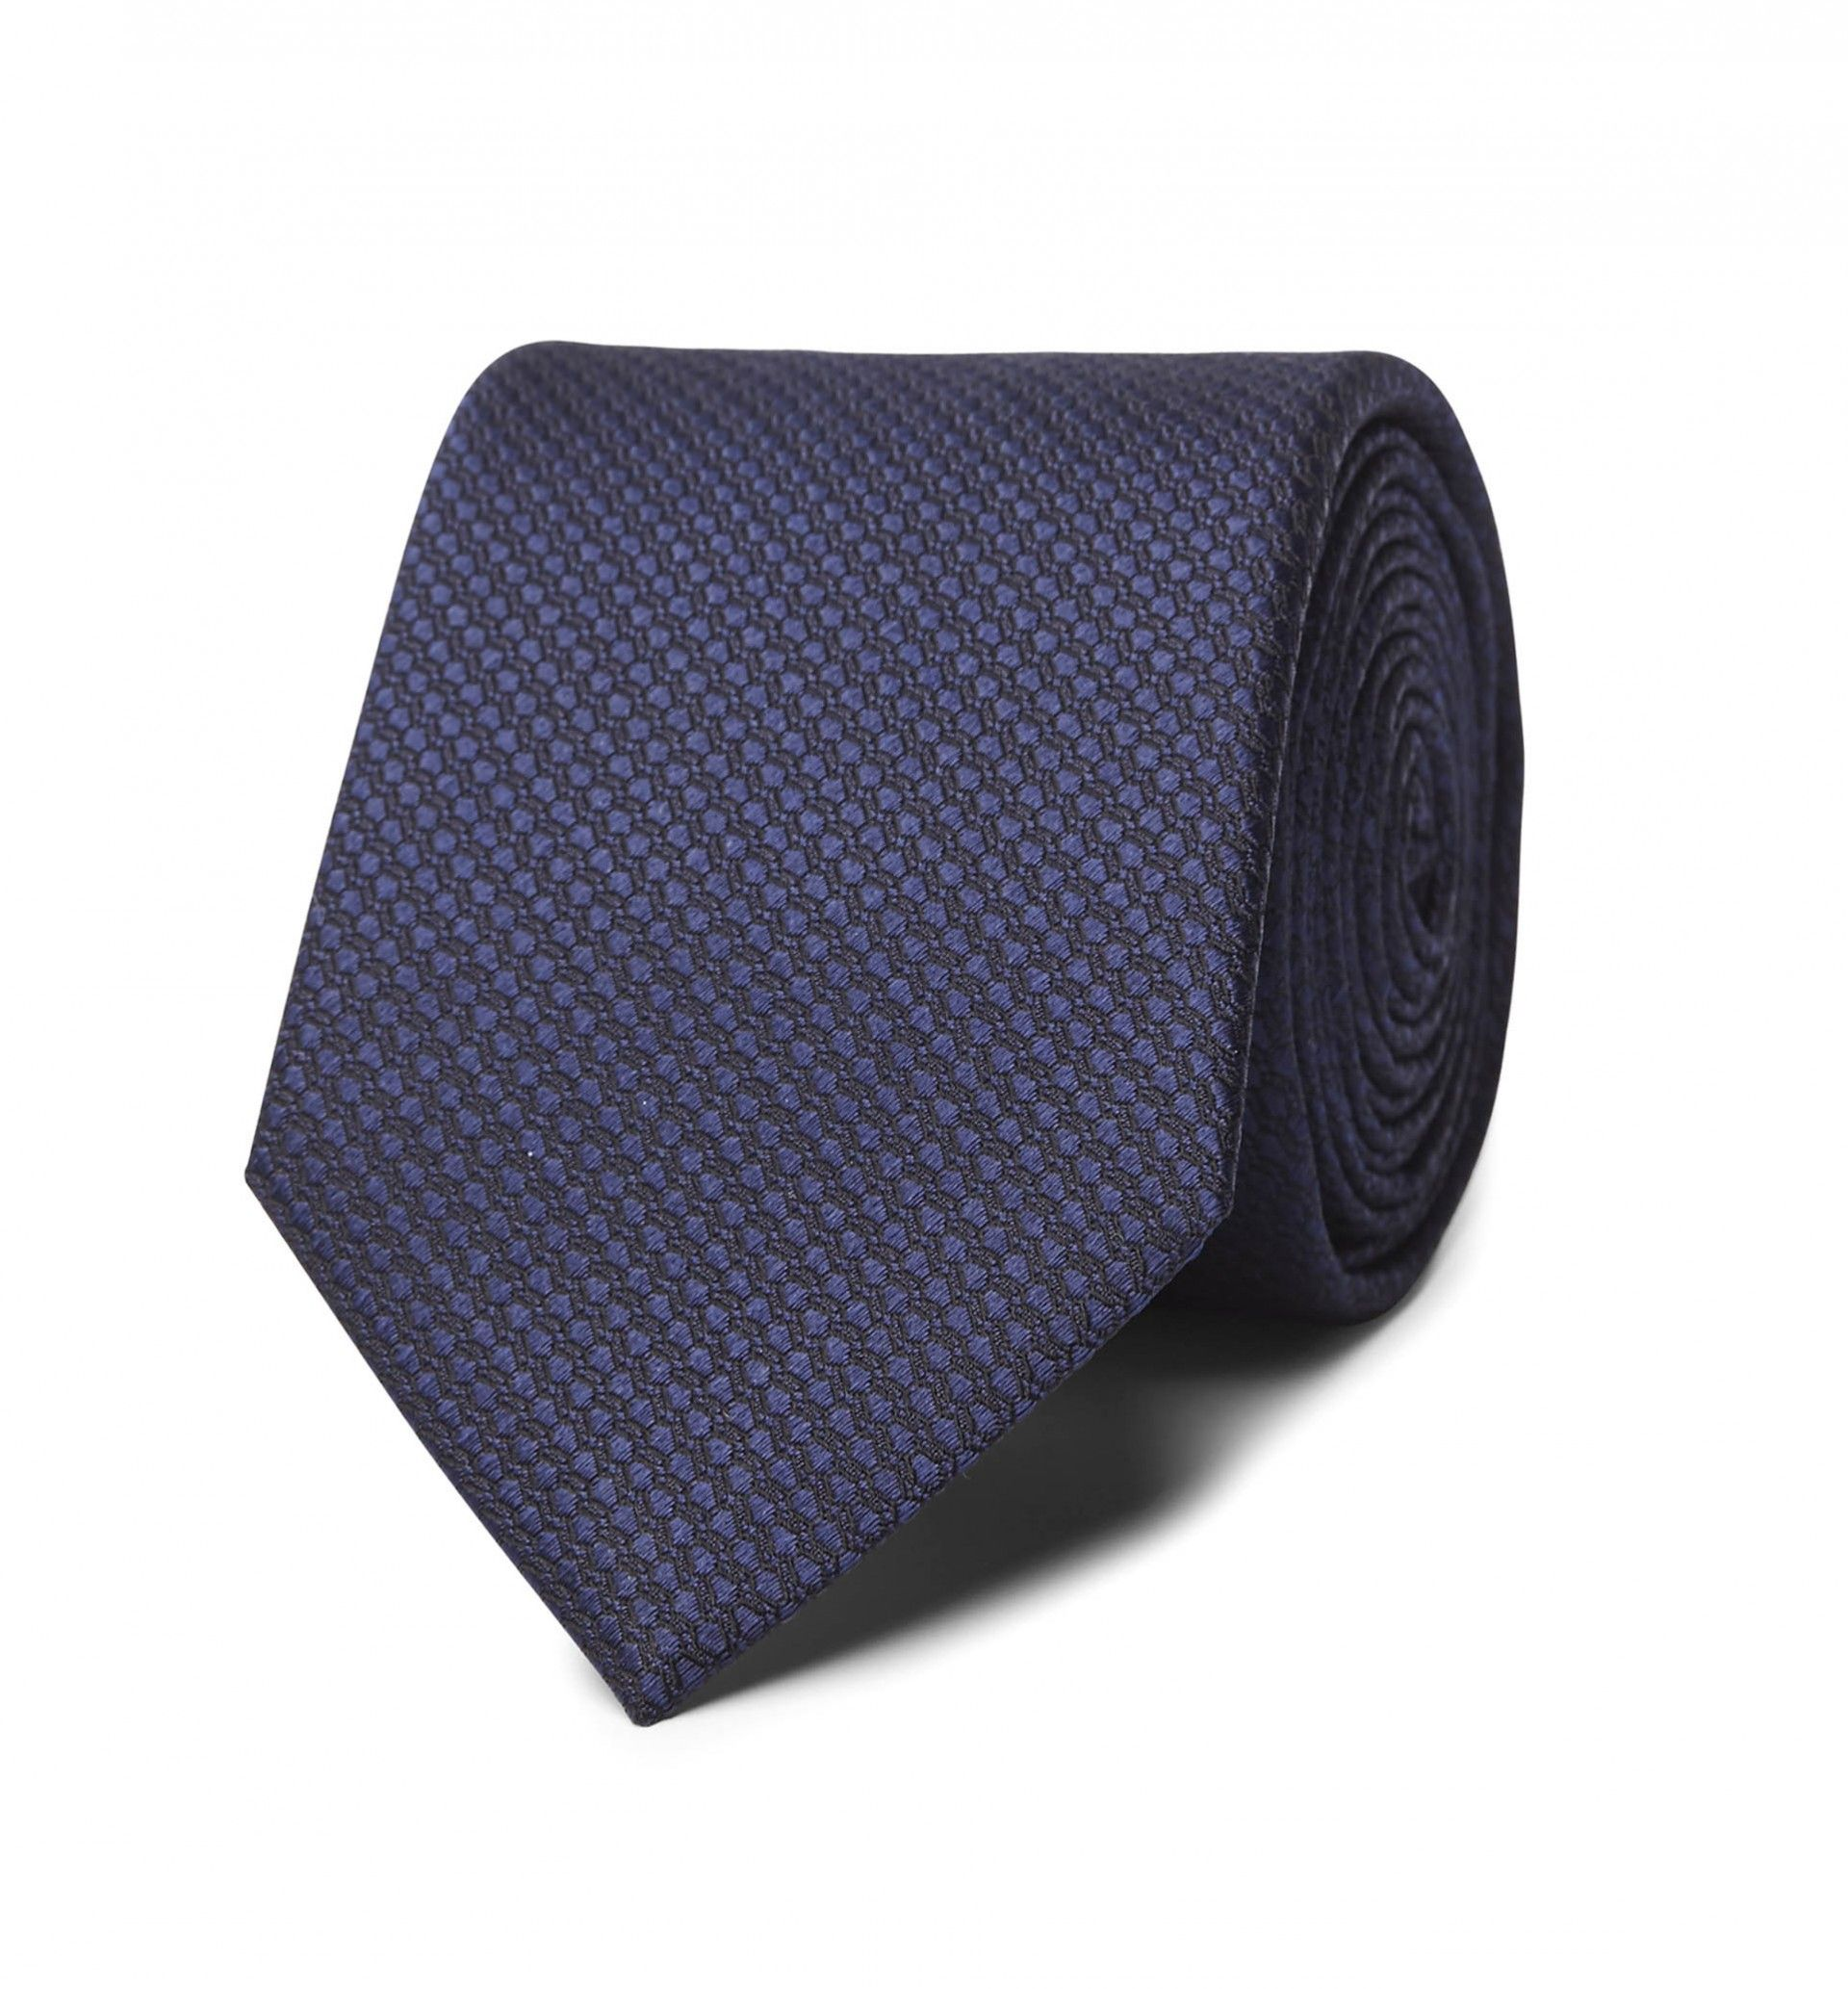 Don't let your tie be an afterthought - make it a statement. Your outfit isn't complete without an Italian silk tie.